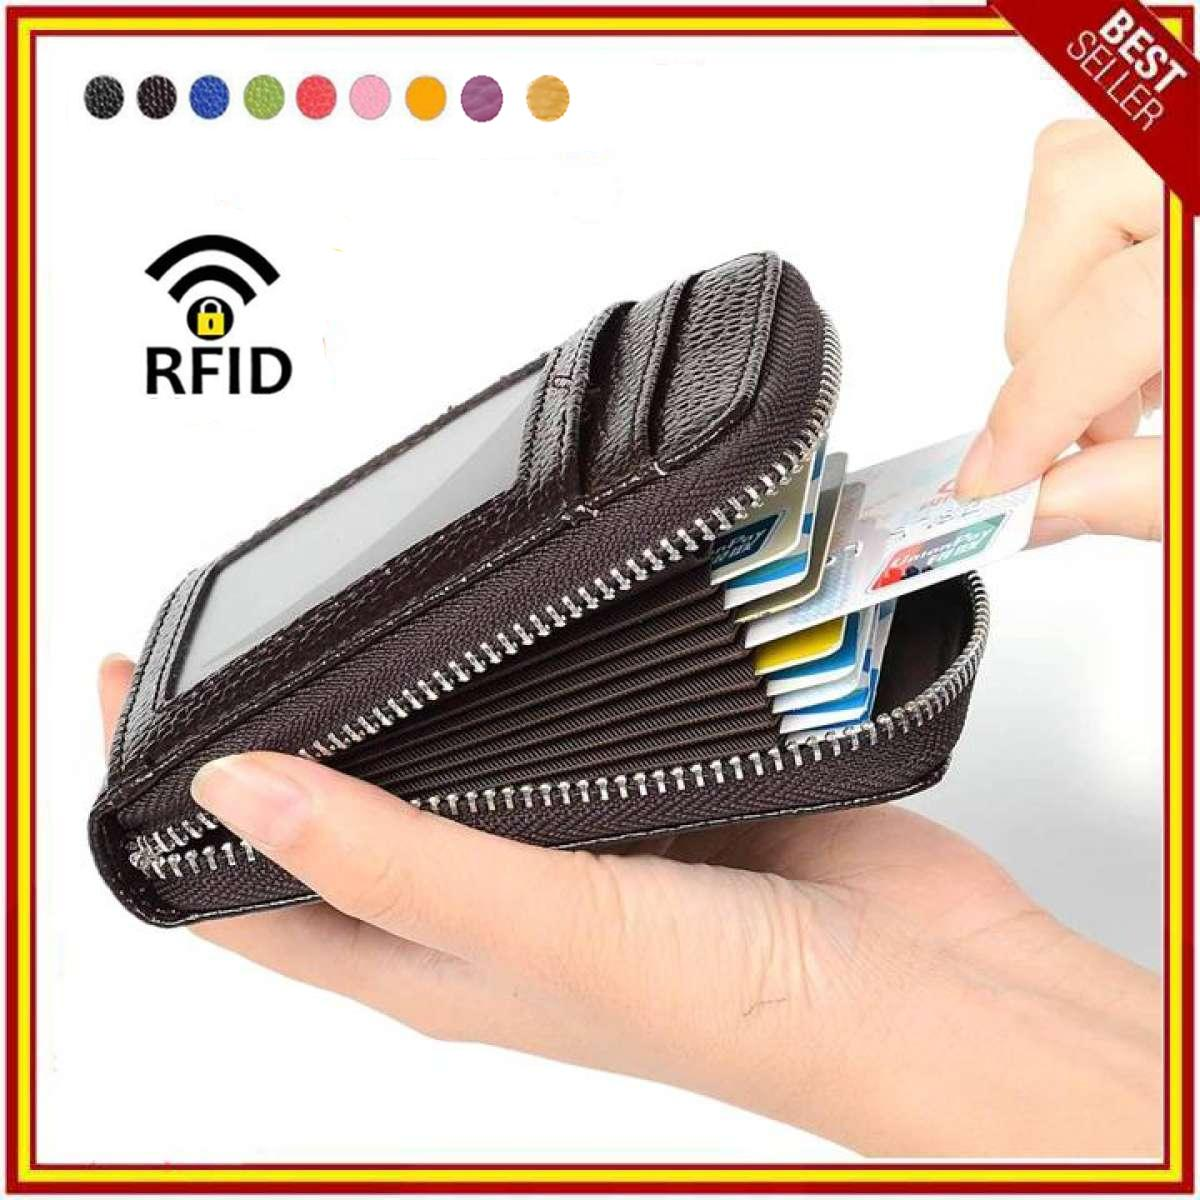 Rfid Blocking Genuine Leather Credit Card Case Holder Security Travel Wallet Front Pocket Wallets For Men And Women By Cenblue Story.